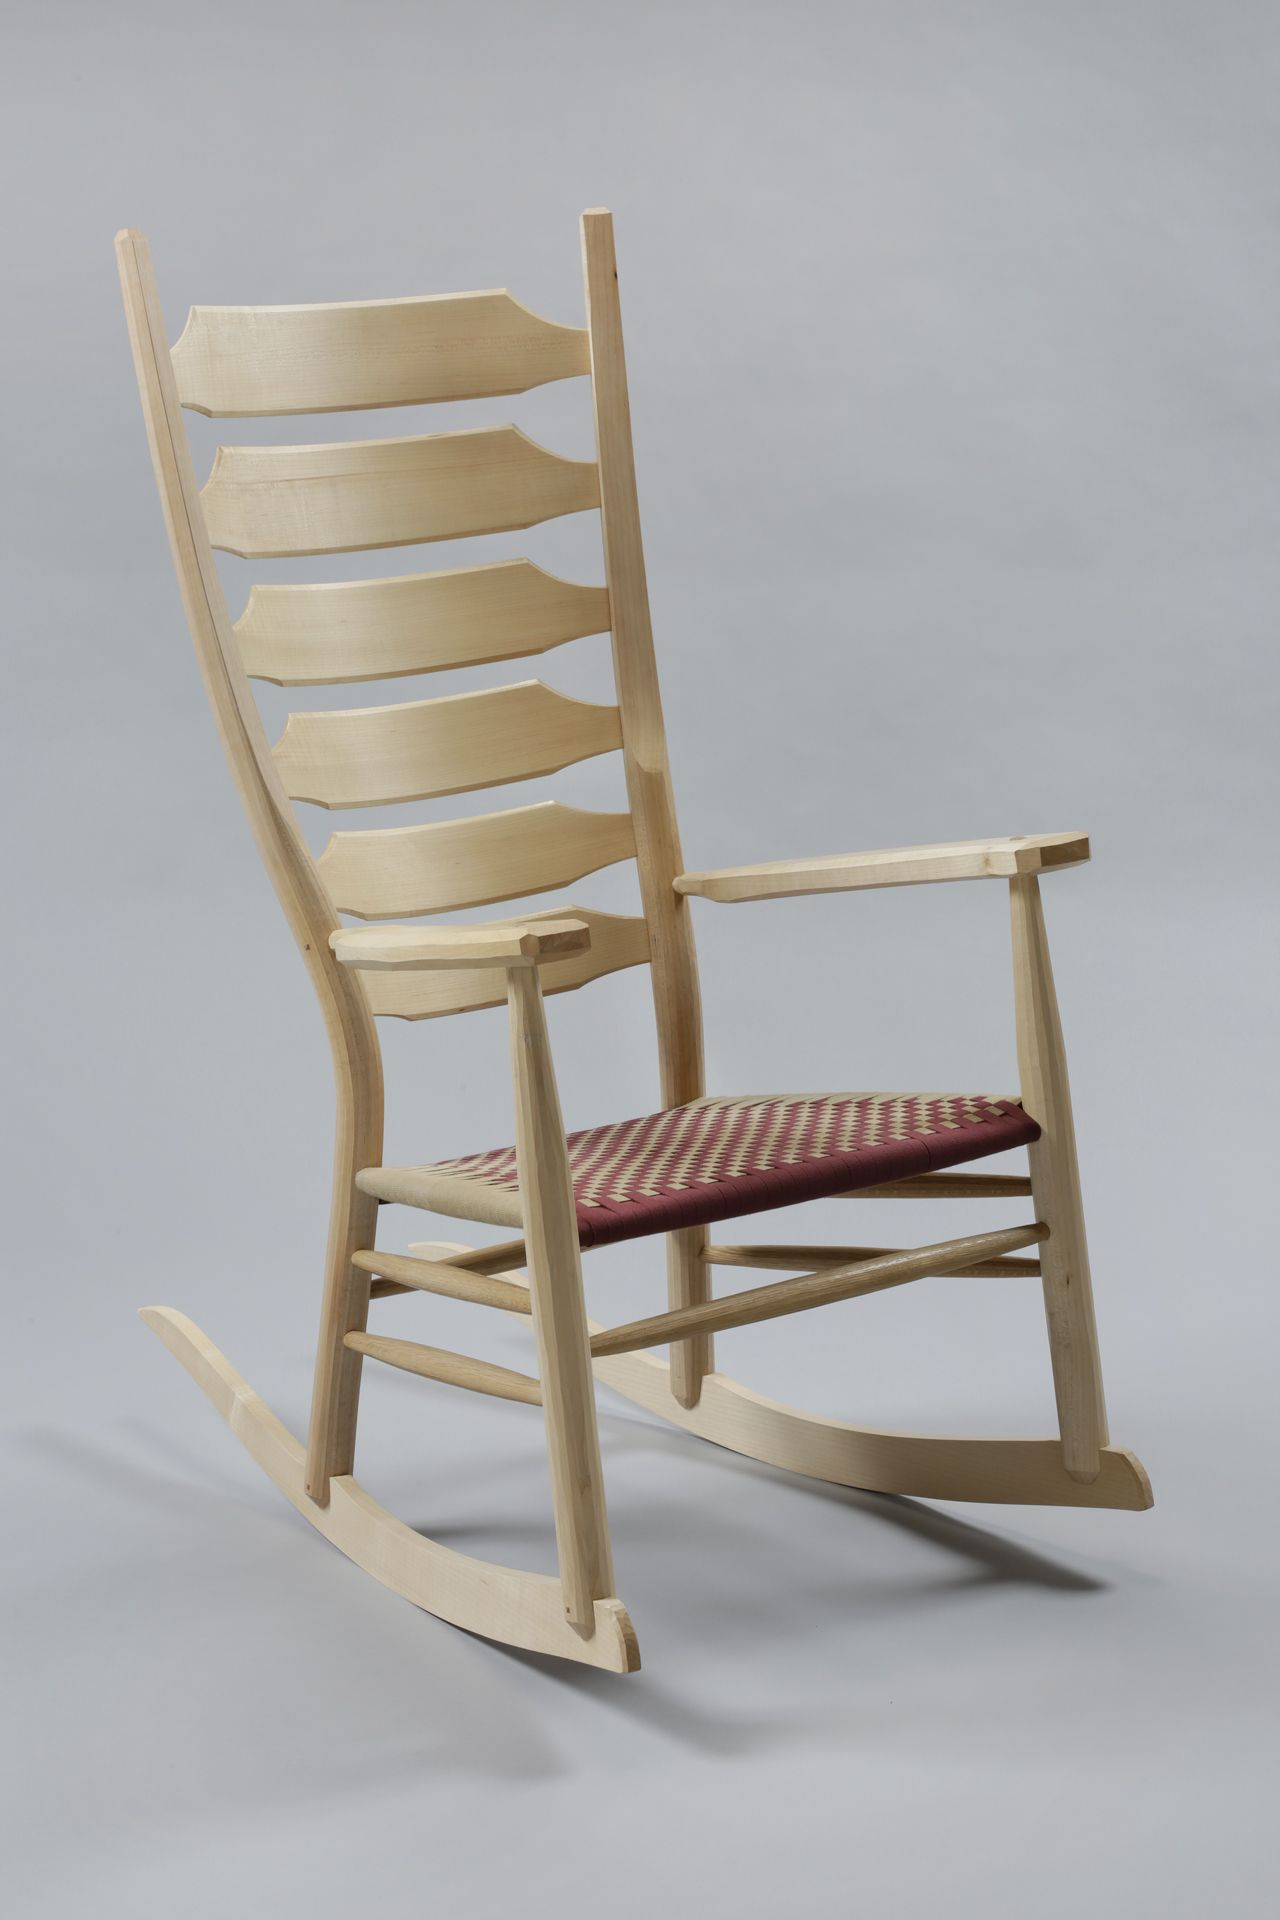 Our Greenwood Rocking Chair Is A Classic Post And Rung Chair Grown From  Ancient Woodworking Techniques. Designed By Brian Boggs; Handmade In North  Carolina.